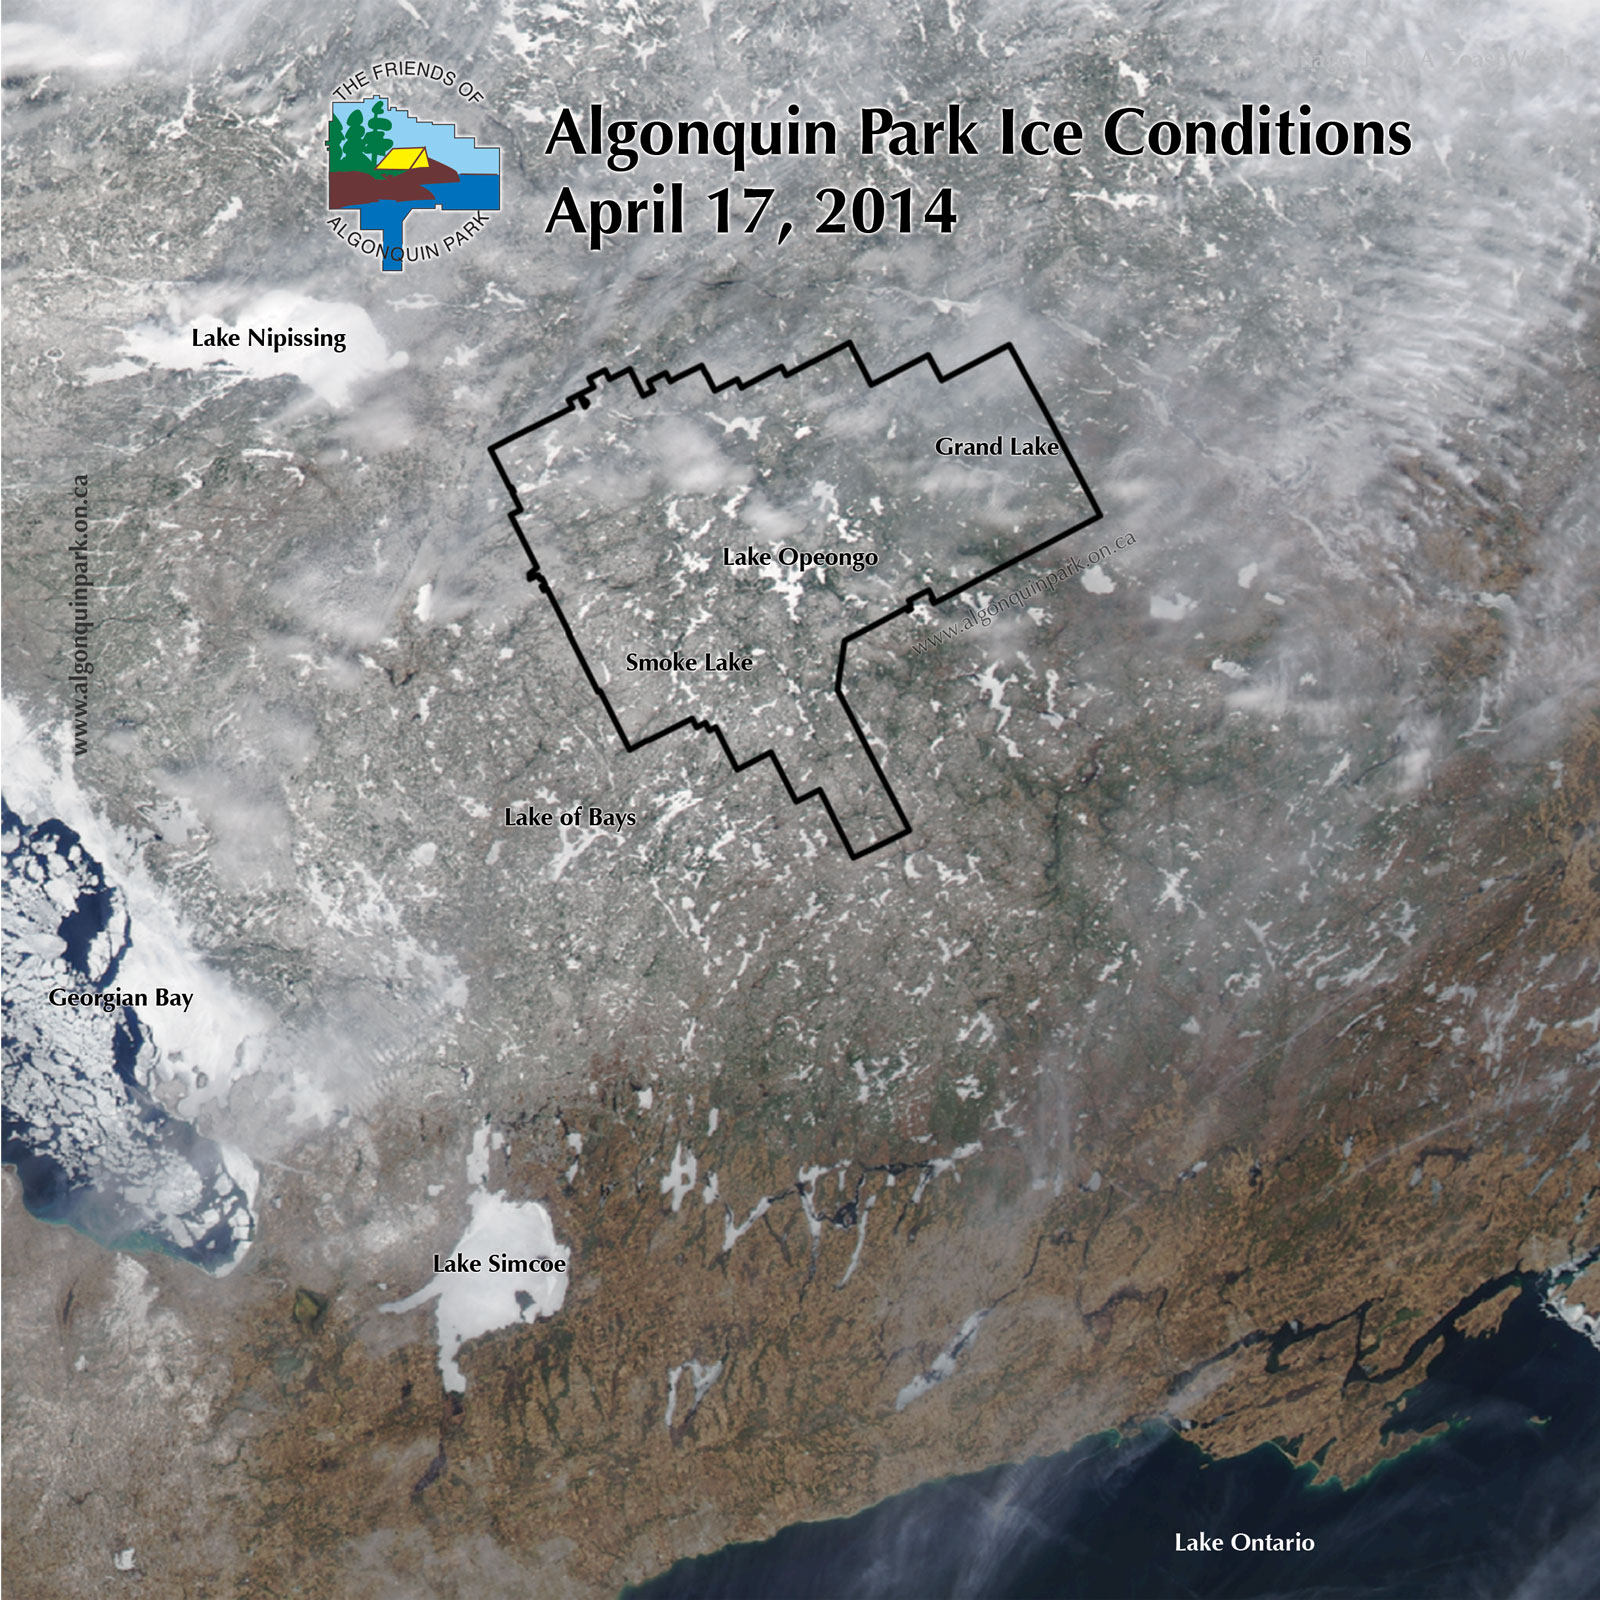 Algonquin Park Ice Cover on April 17, 2014